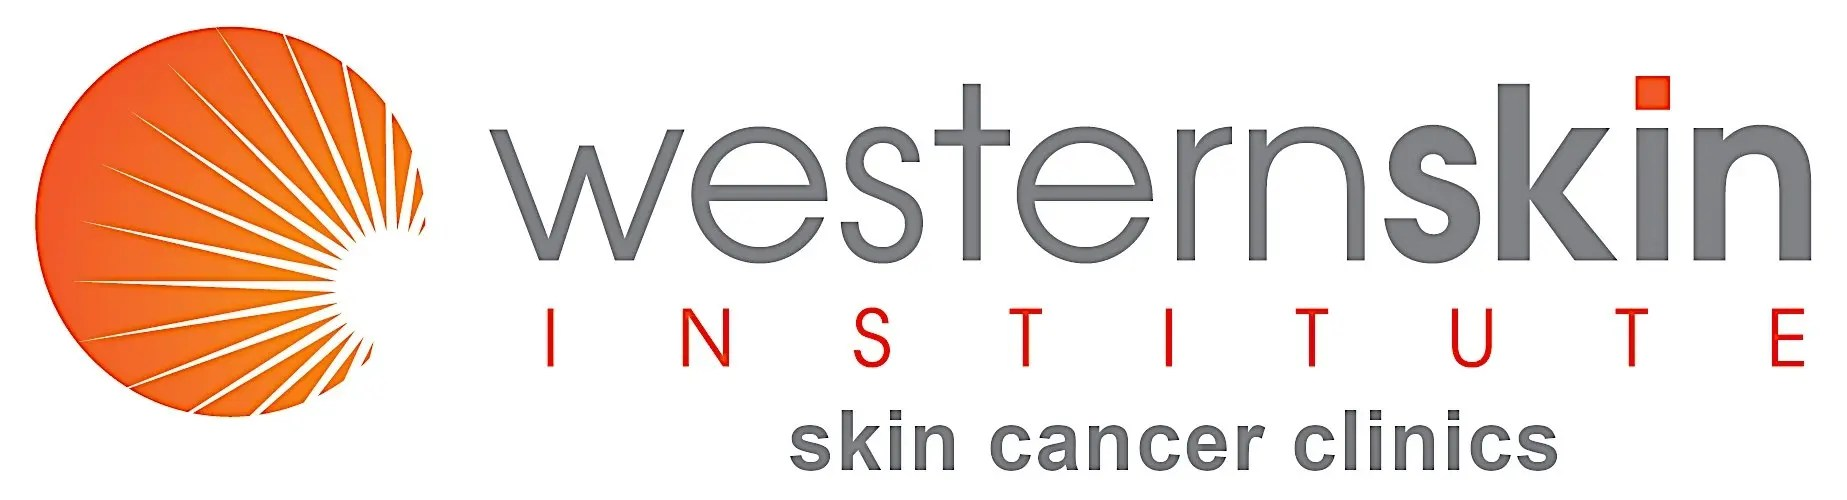 Western Skin Institute Skin Cancer Clinics